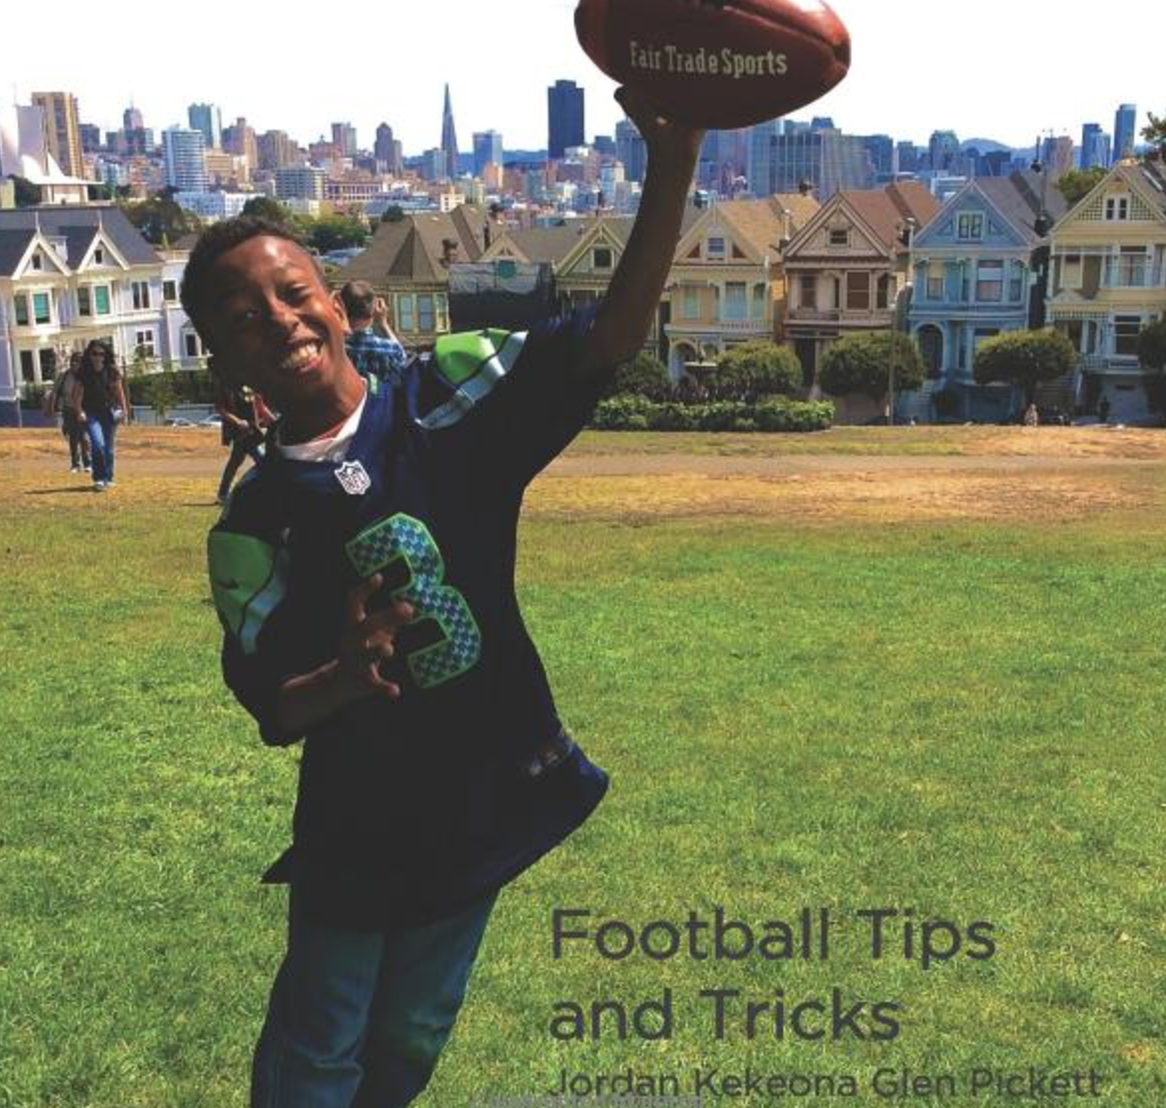 Football Tips and Tricks   Jordan Kekeona Glen Pickett loves teaching people how to play football. Read along to learn the Football Tips and Tricks you need to be a great player!   Buy this book.